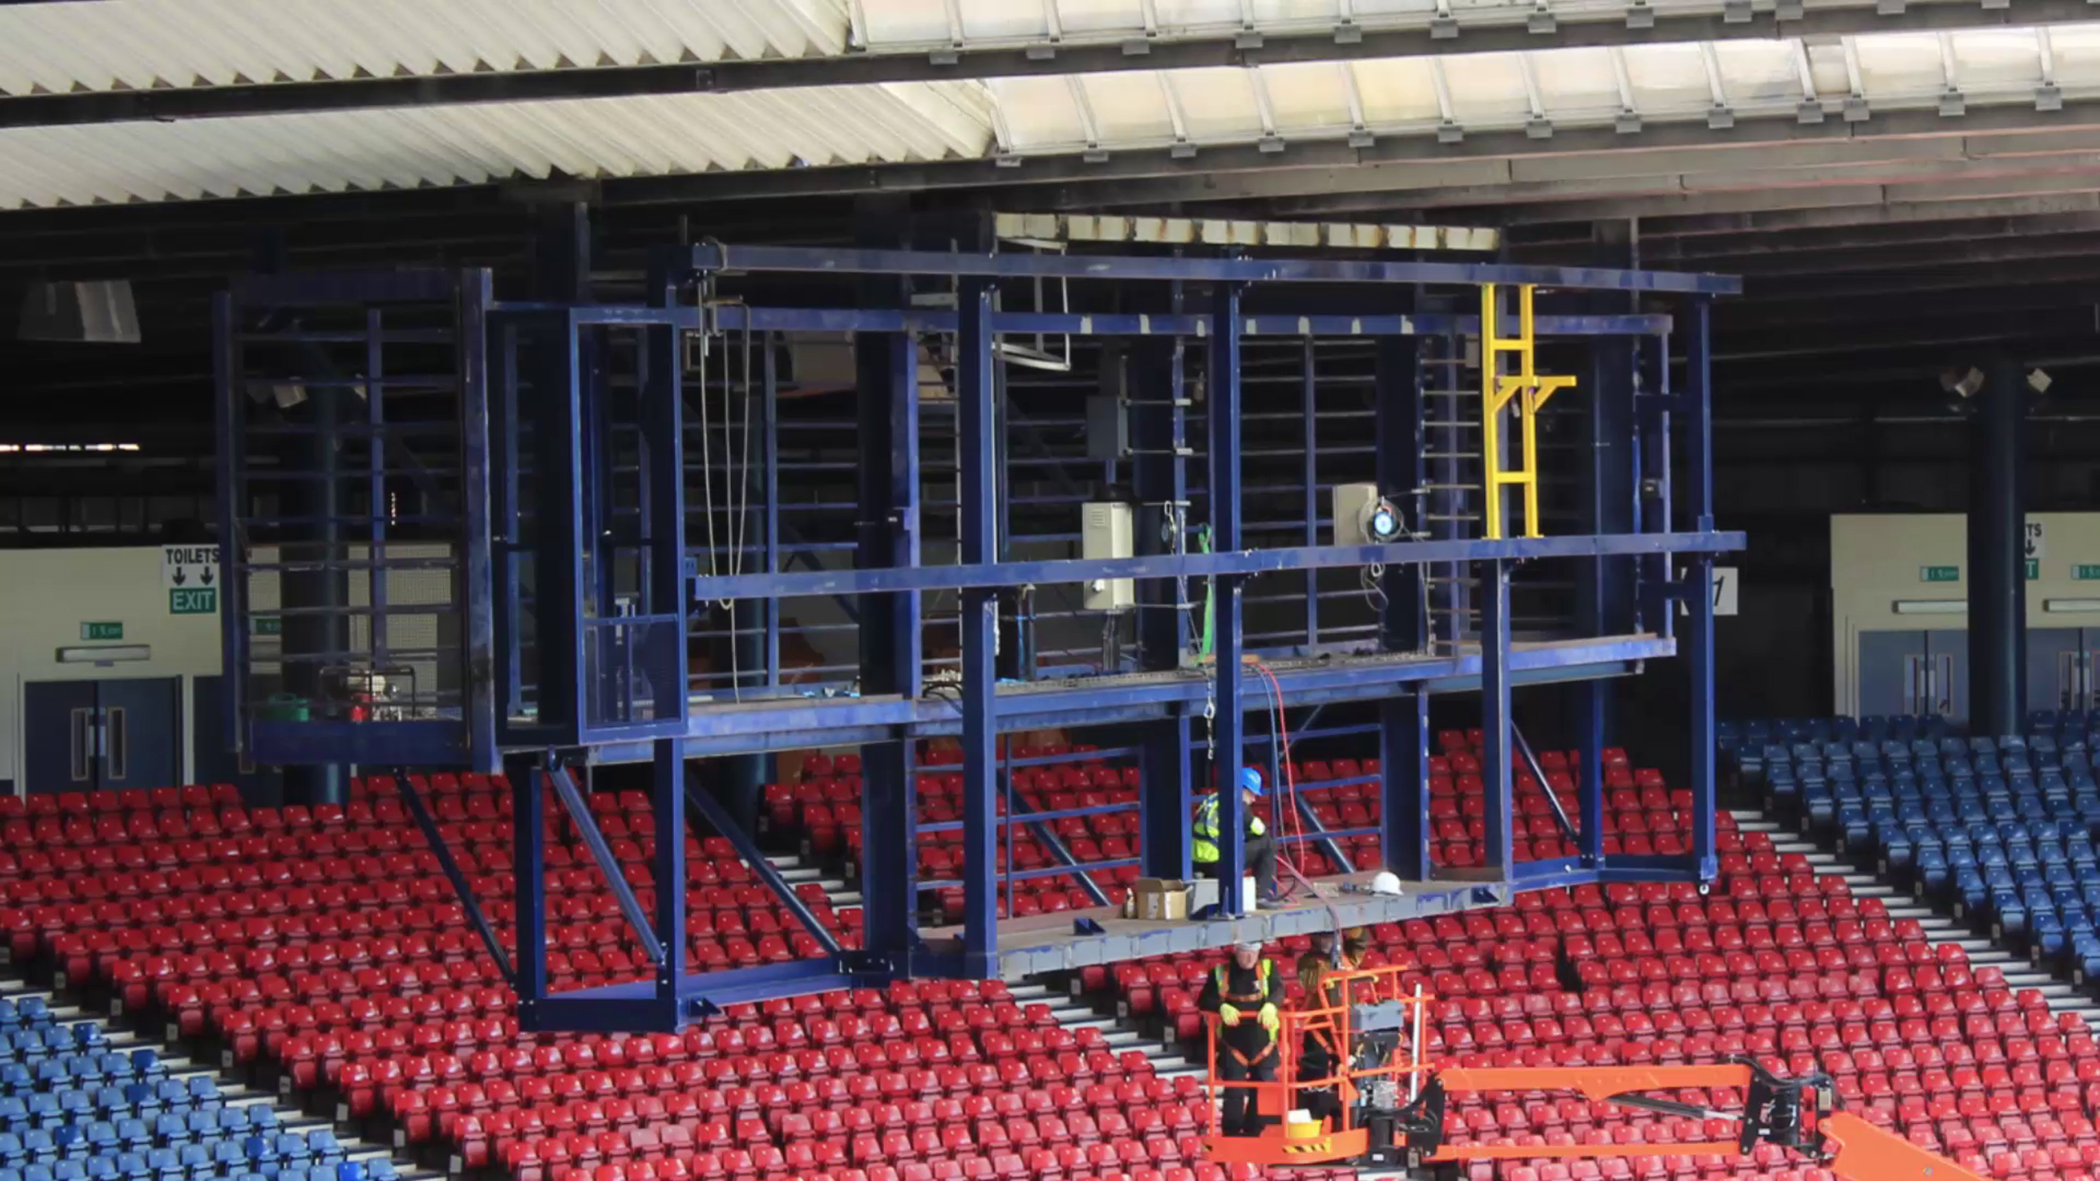 New, bigger scoreboard steel structures for Hampden Park stadium